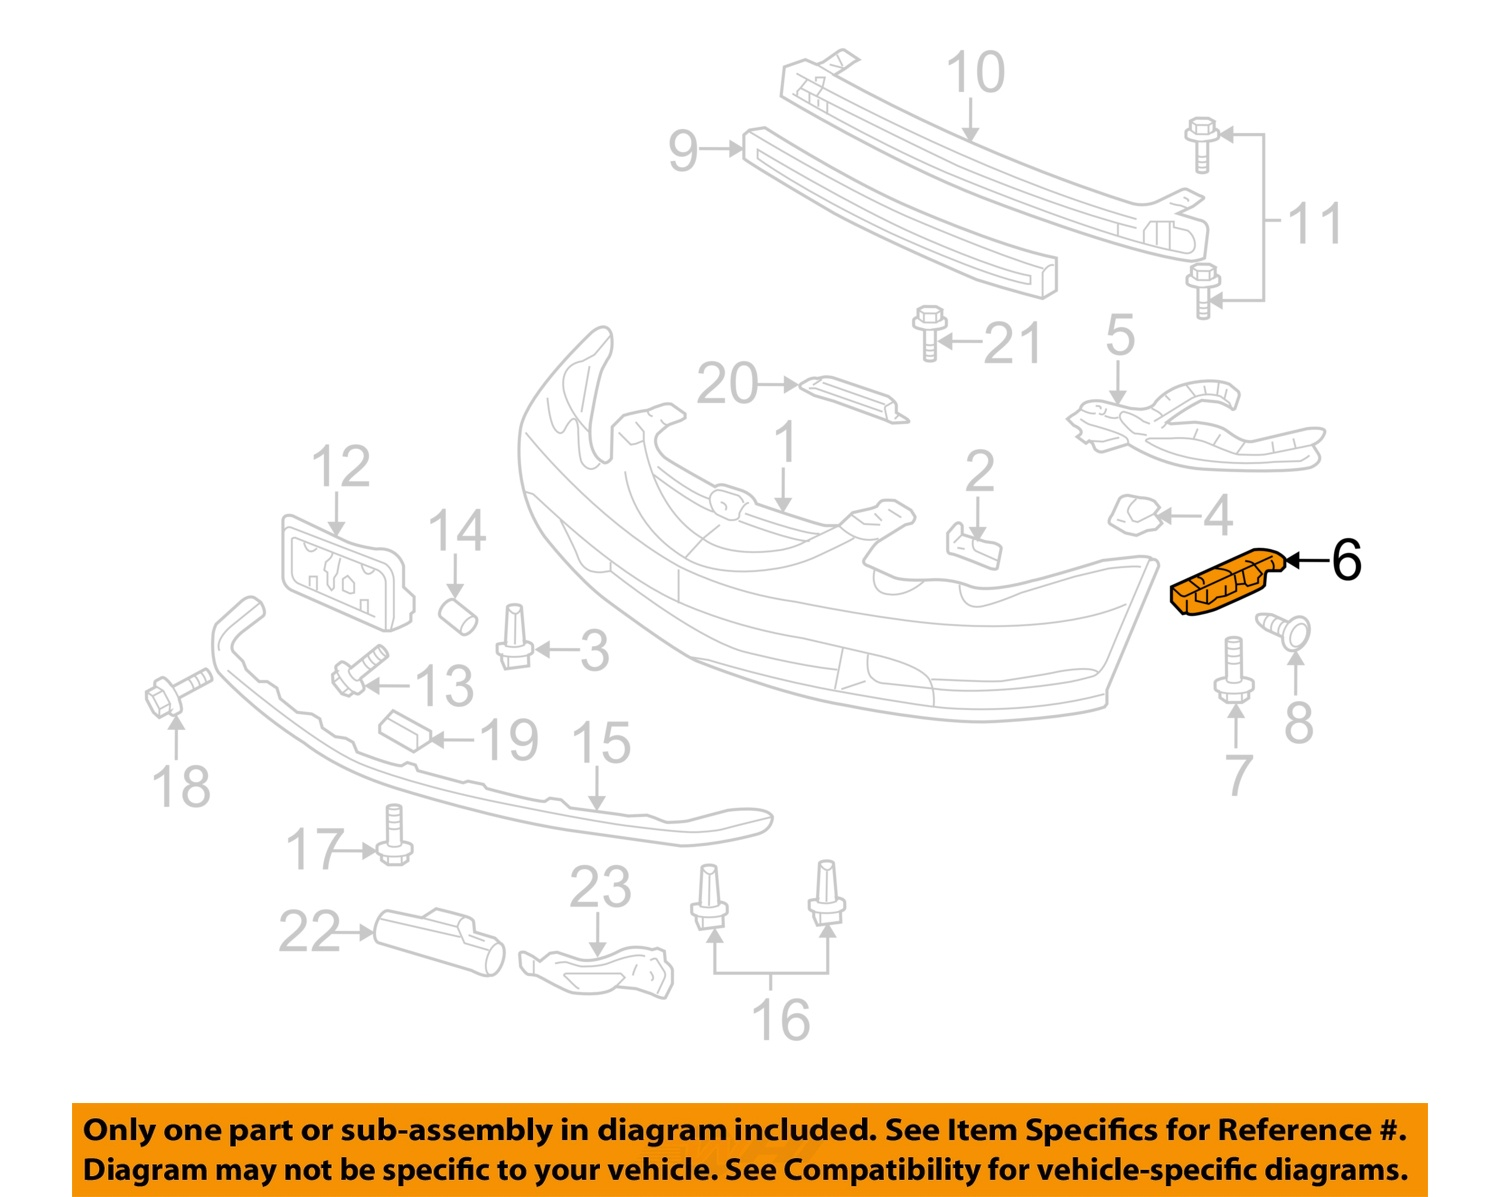 2001 Toyota Tacoma Trailer Wiring Harness Solutions Acura Rsx Engine Diagram Parts Data Diagrams